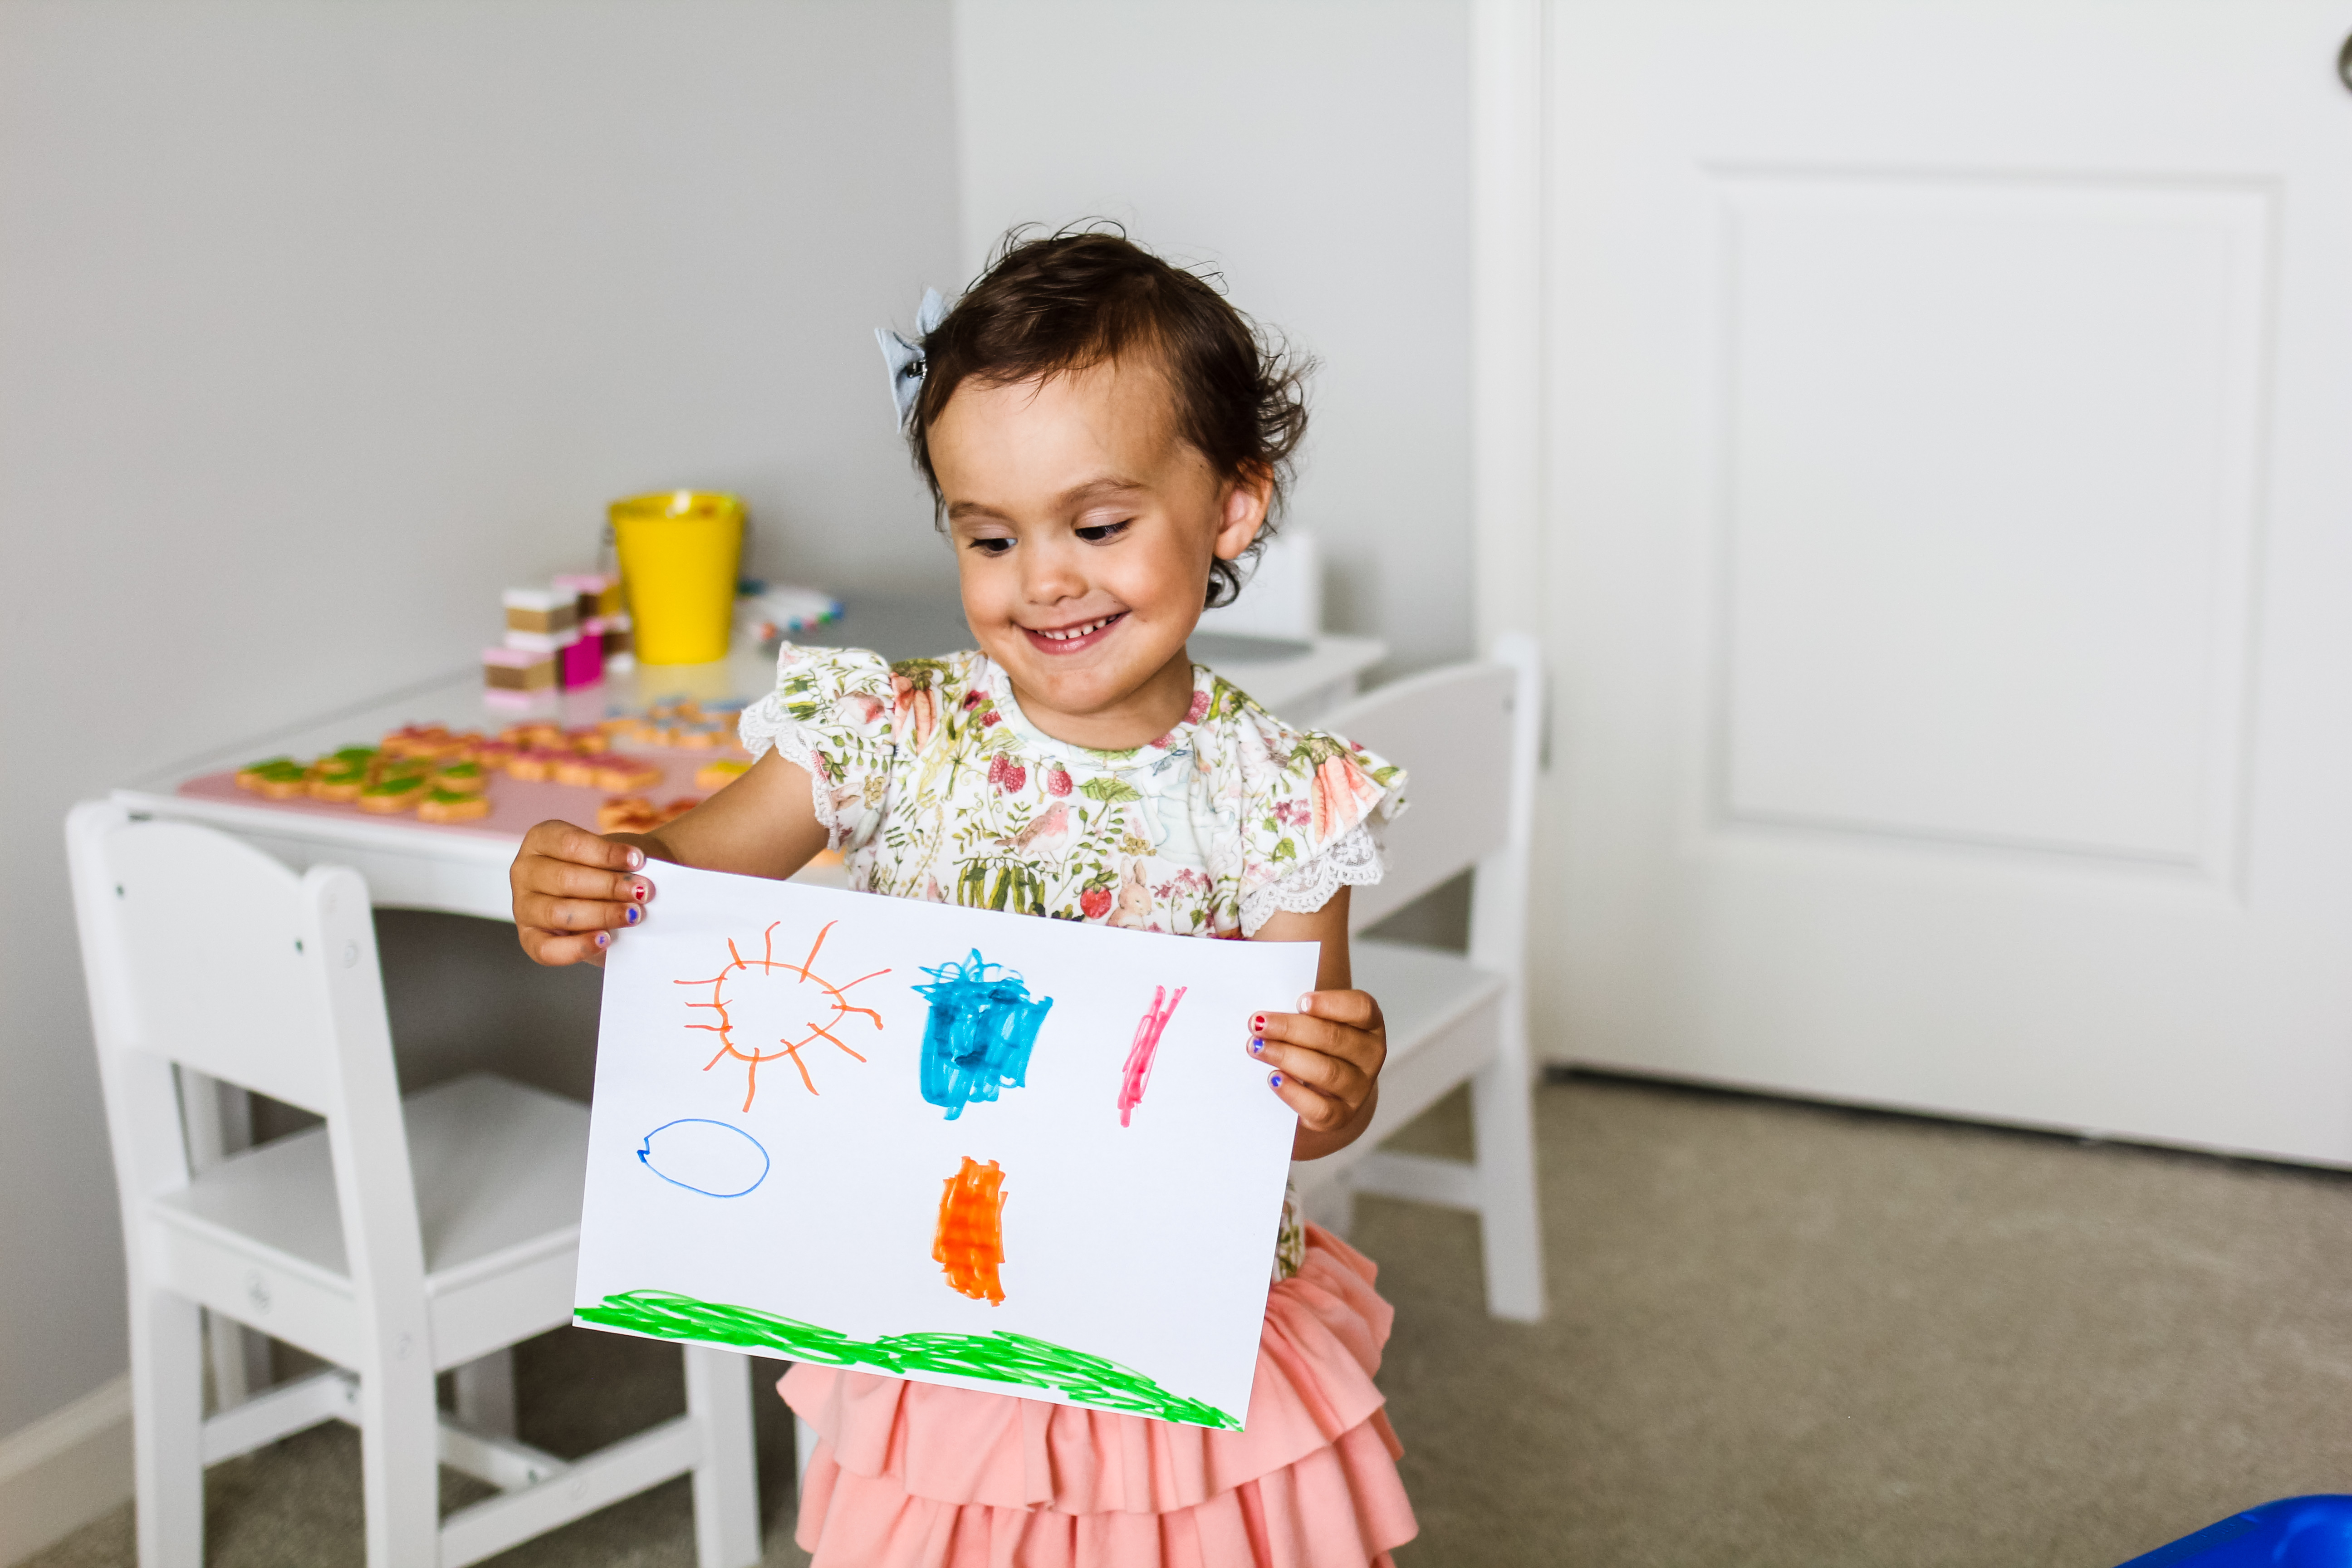 Finding Quality Rated Child Care in Georgia